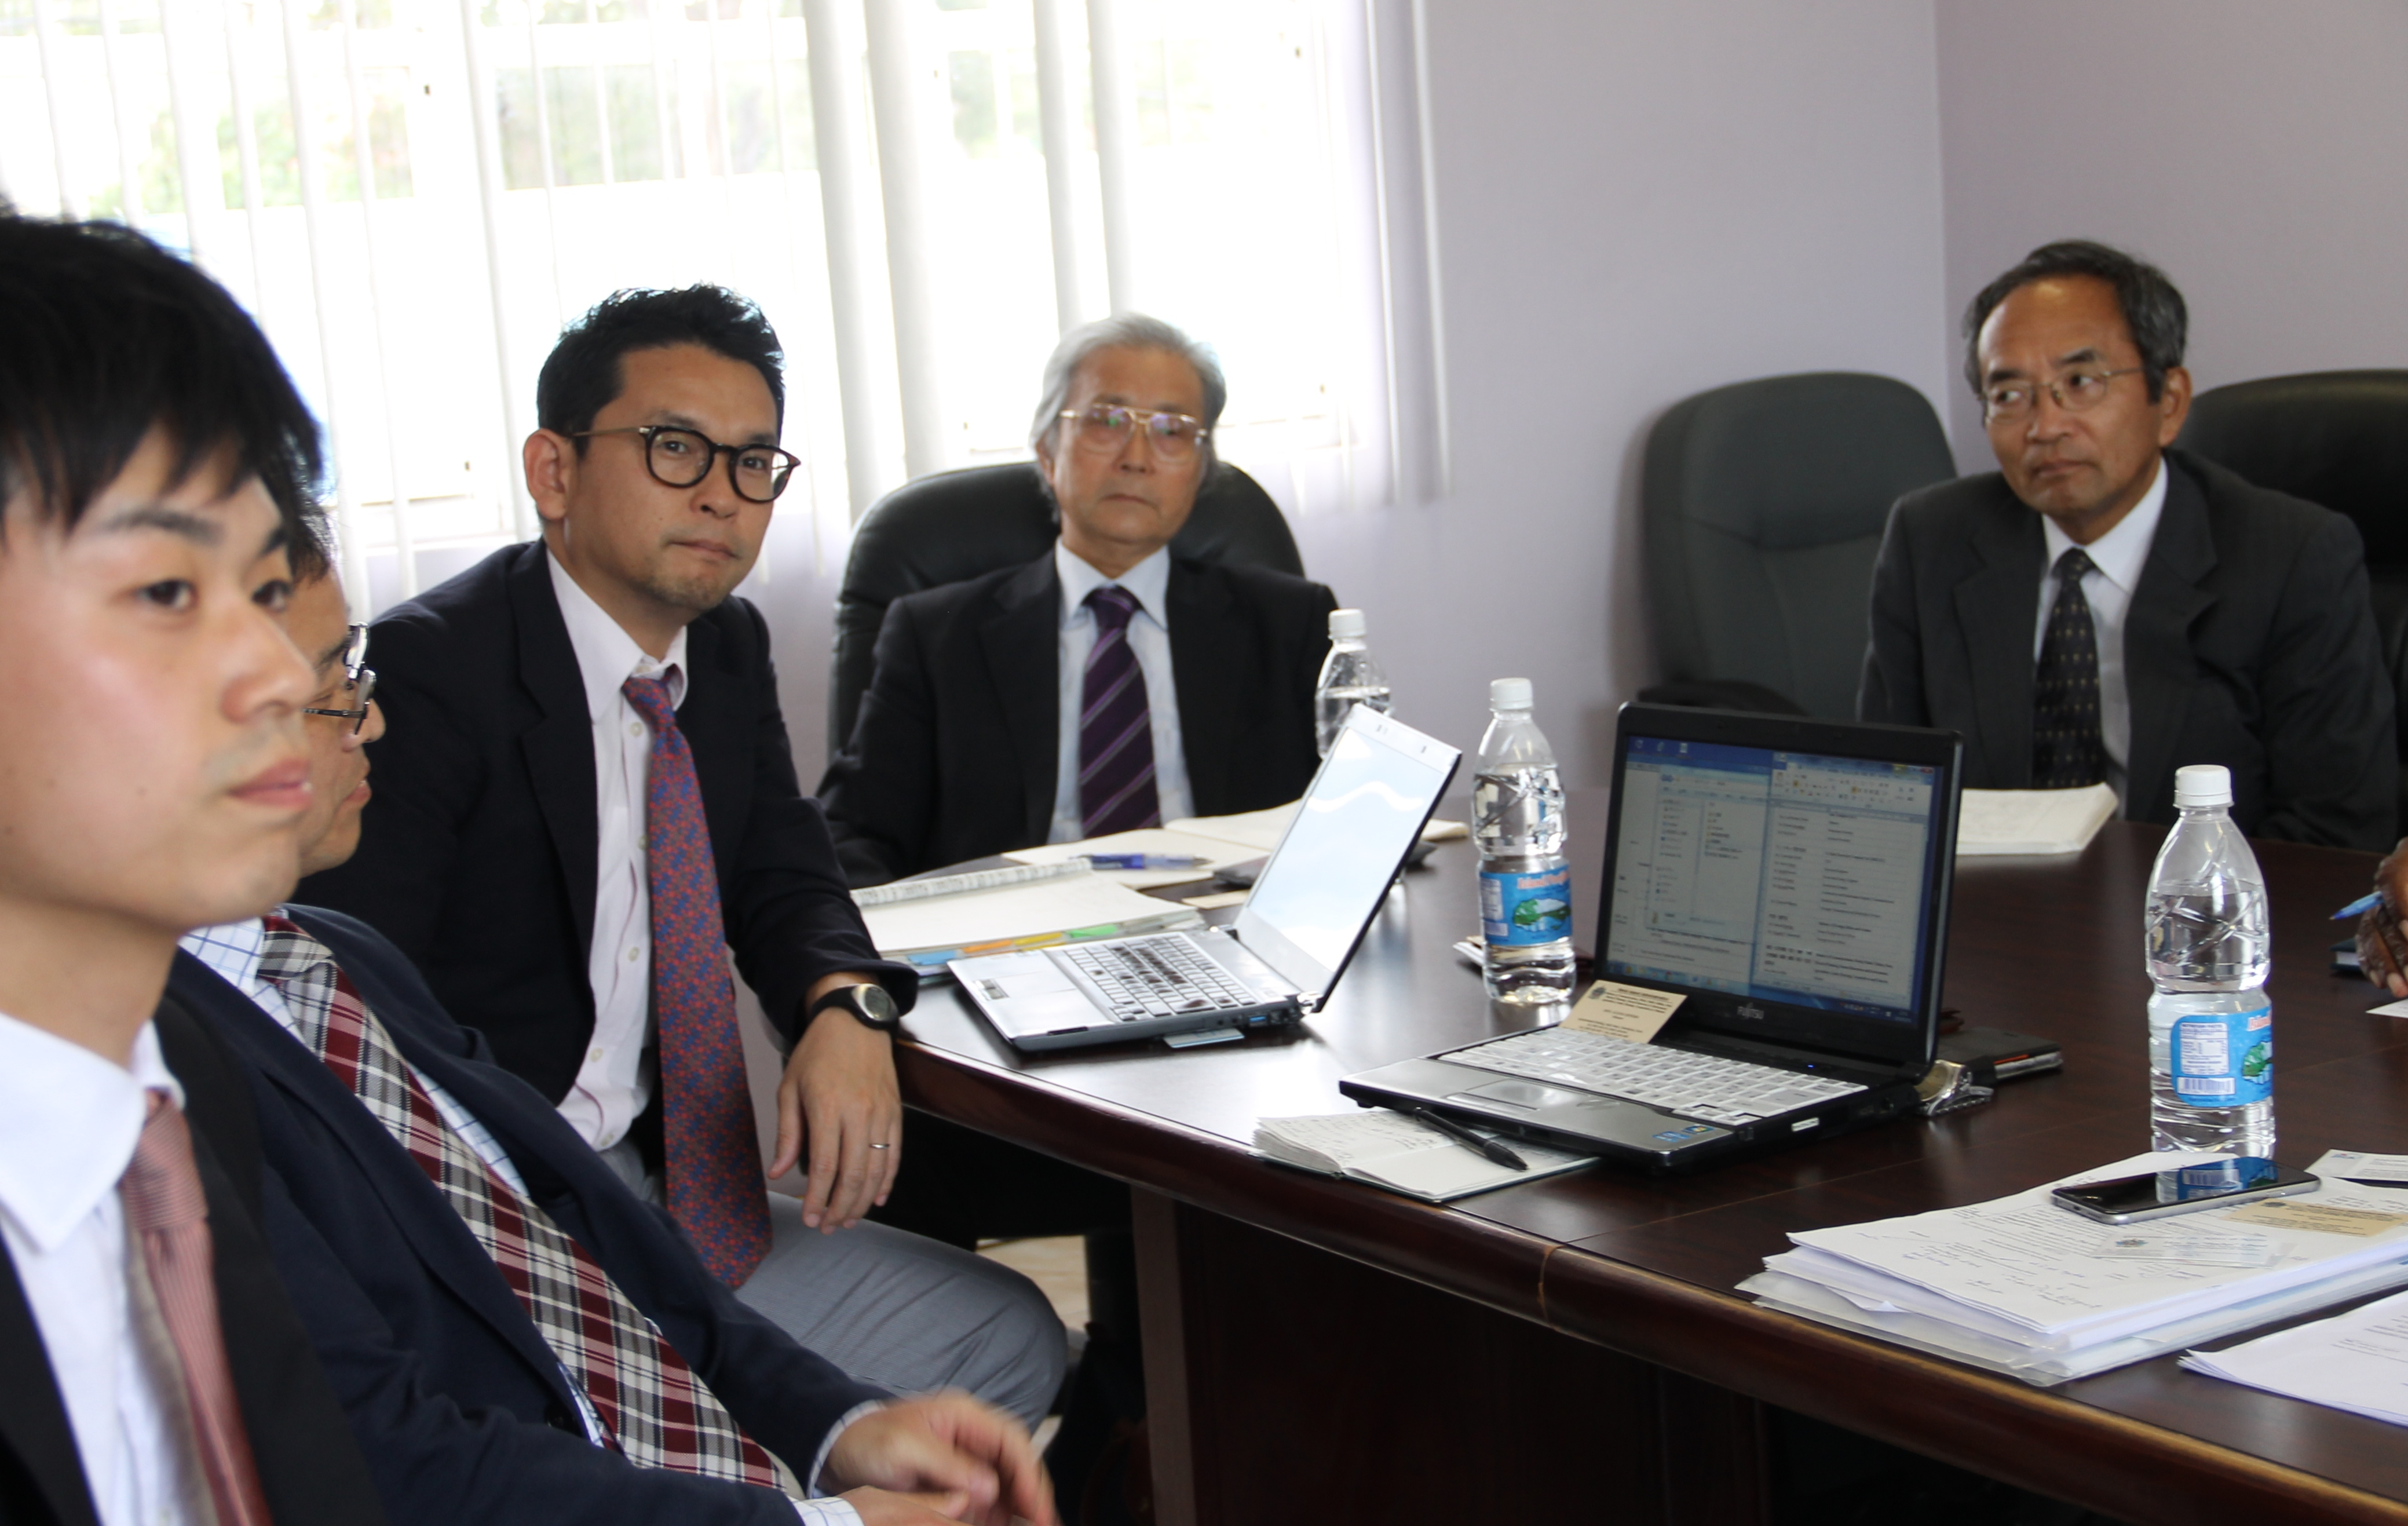 Other members of the Japan International Corporation Agency six-member team during a meeting with Minister responsible for Energy, Natural Resources and Public Utilities on Nevis Hon. Alexis Jeffers at the Nevis Island Administration conference room in Charlestown on March 01, 2016